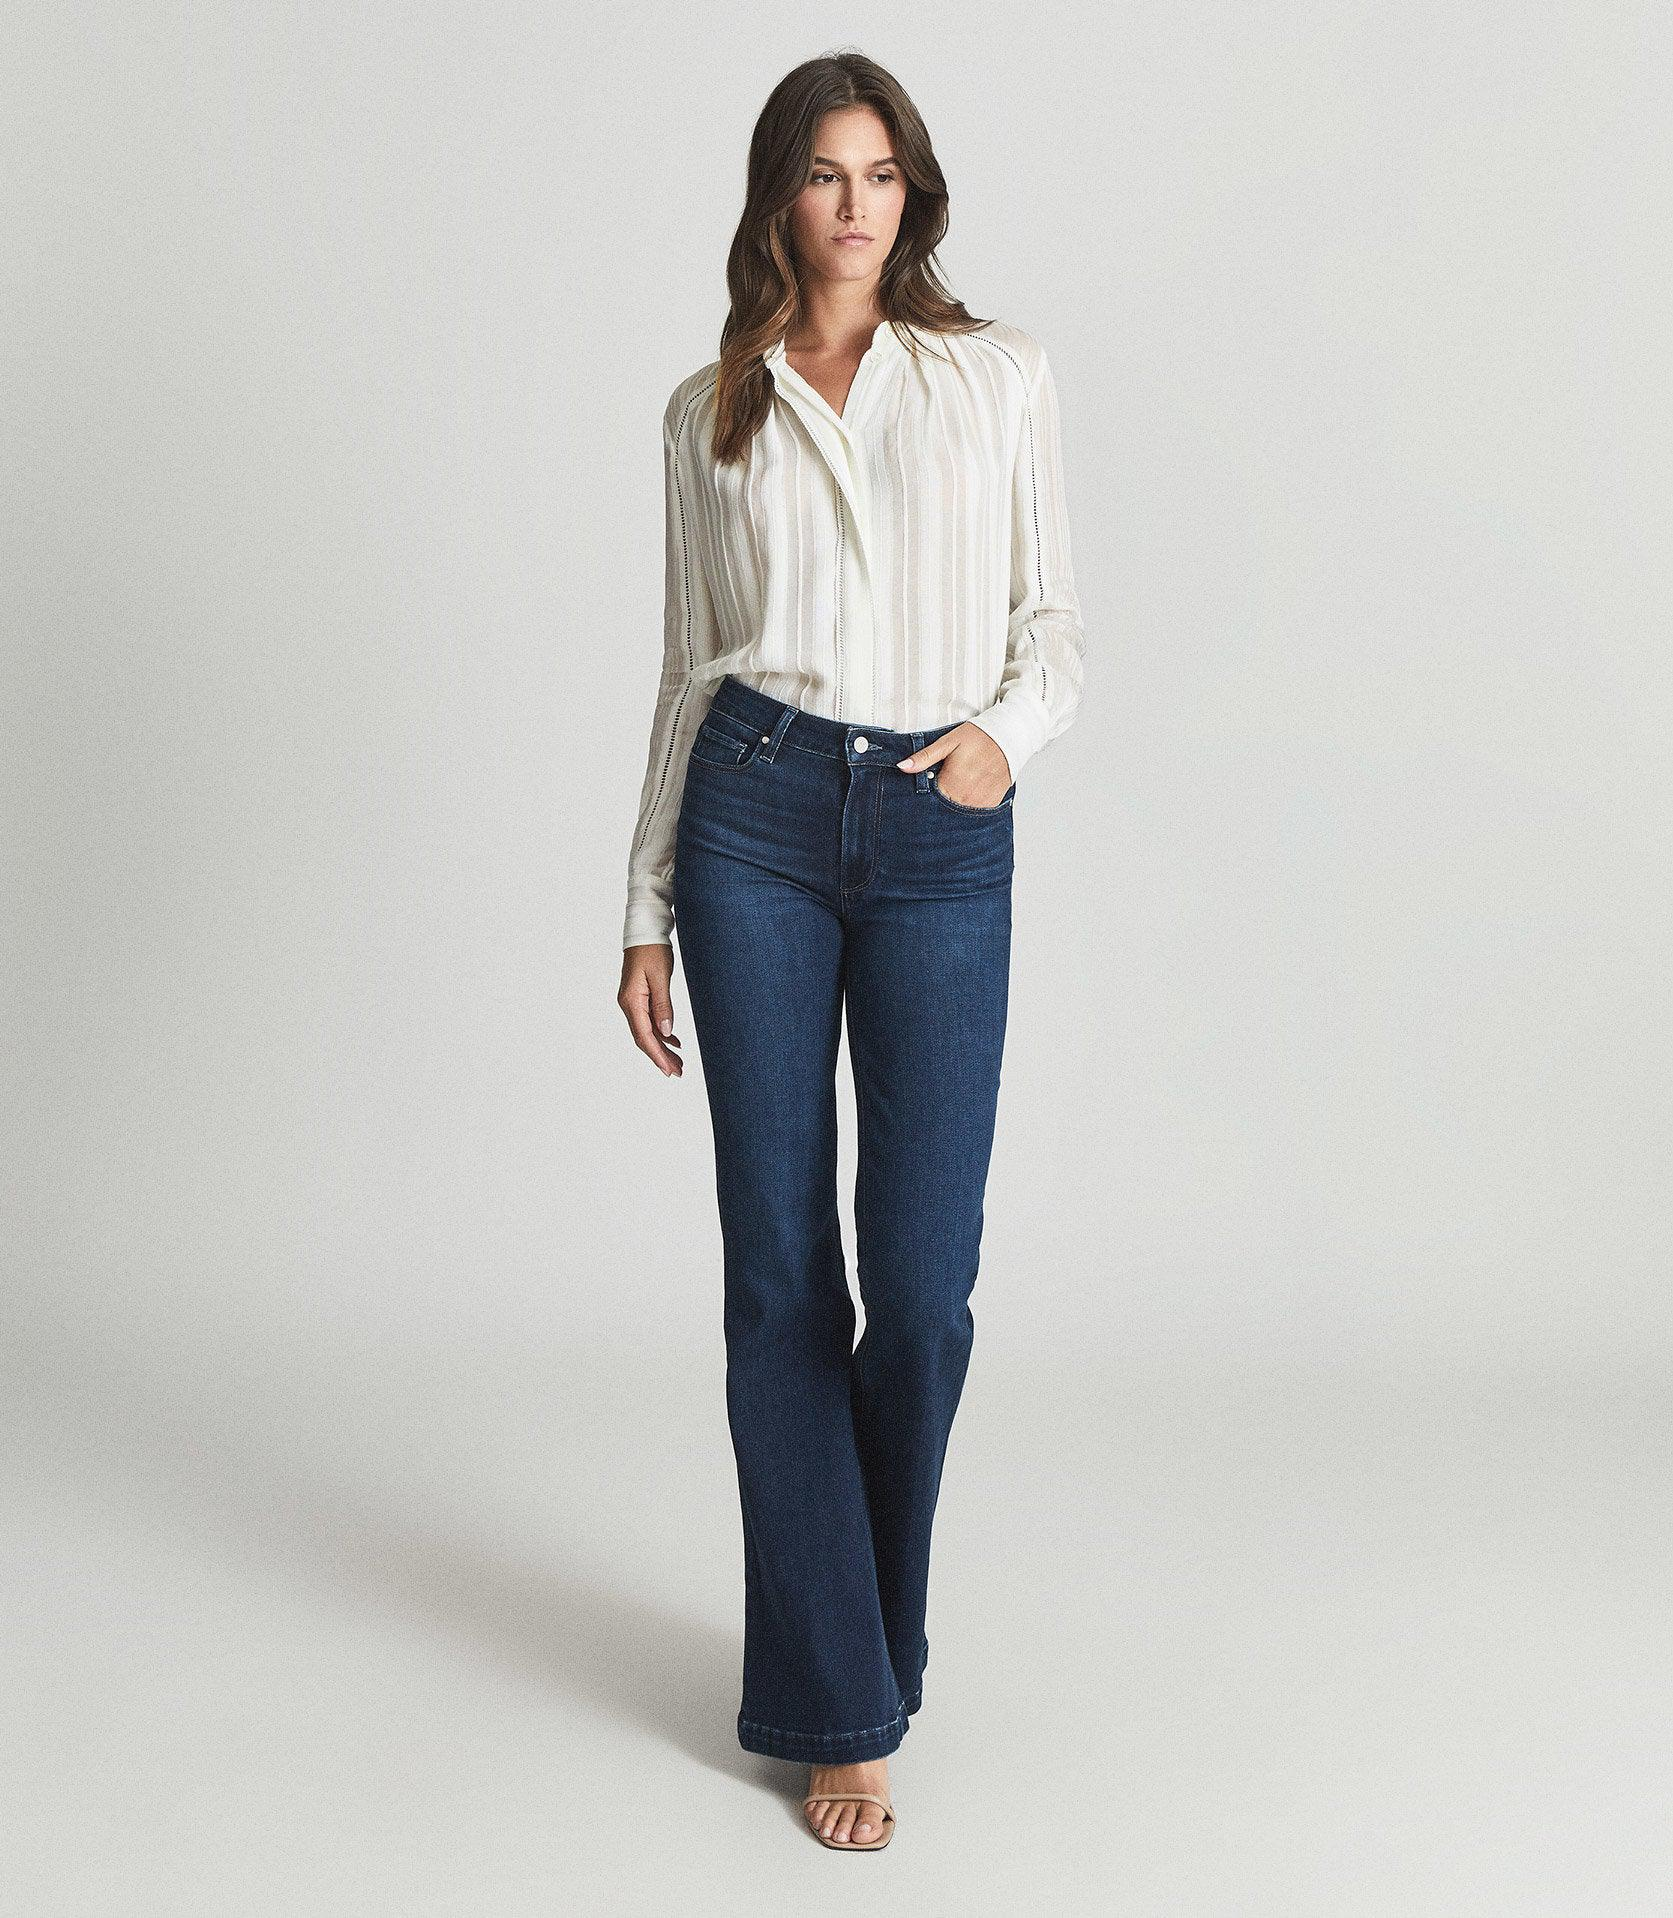 GENEVIEVE - PAIGE HIGH RISE FLARED JEANS